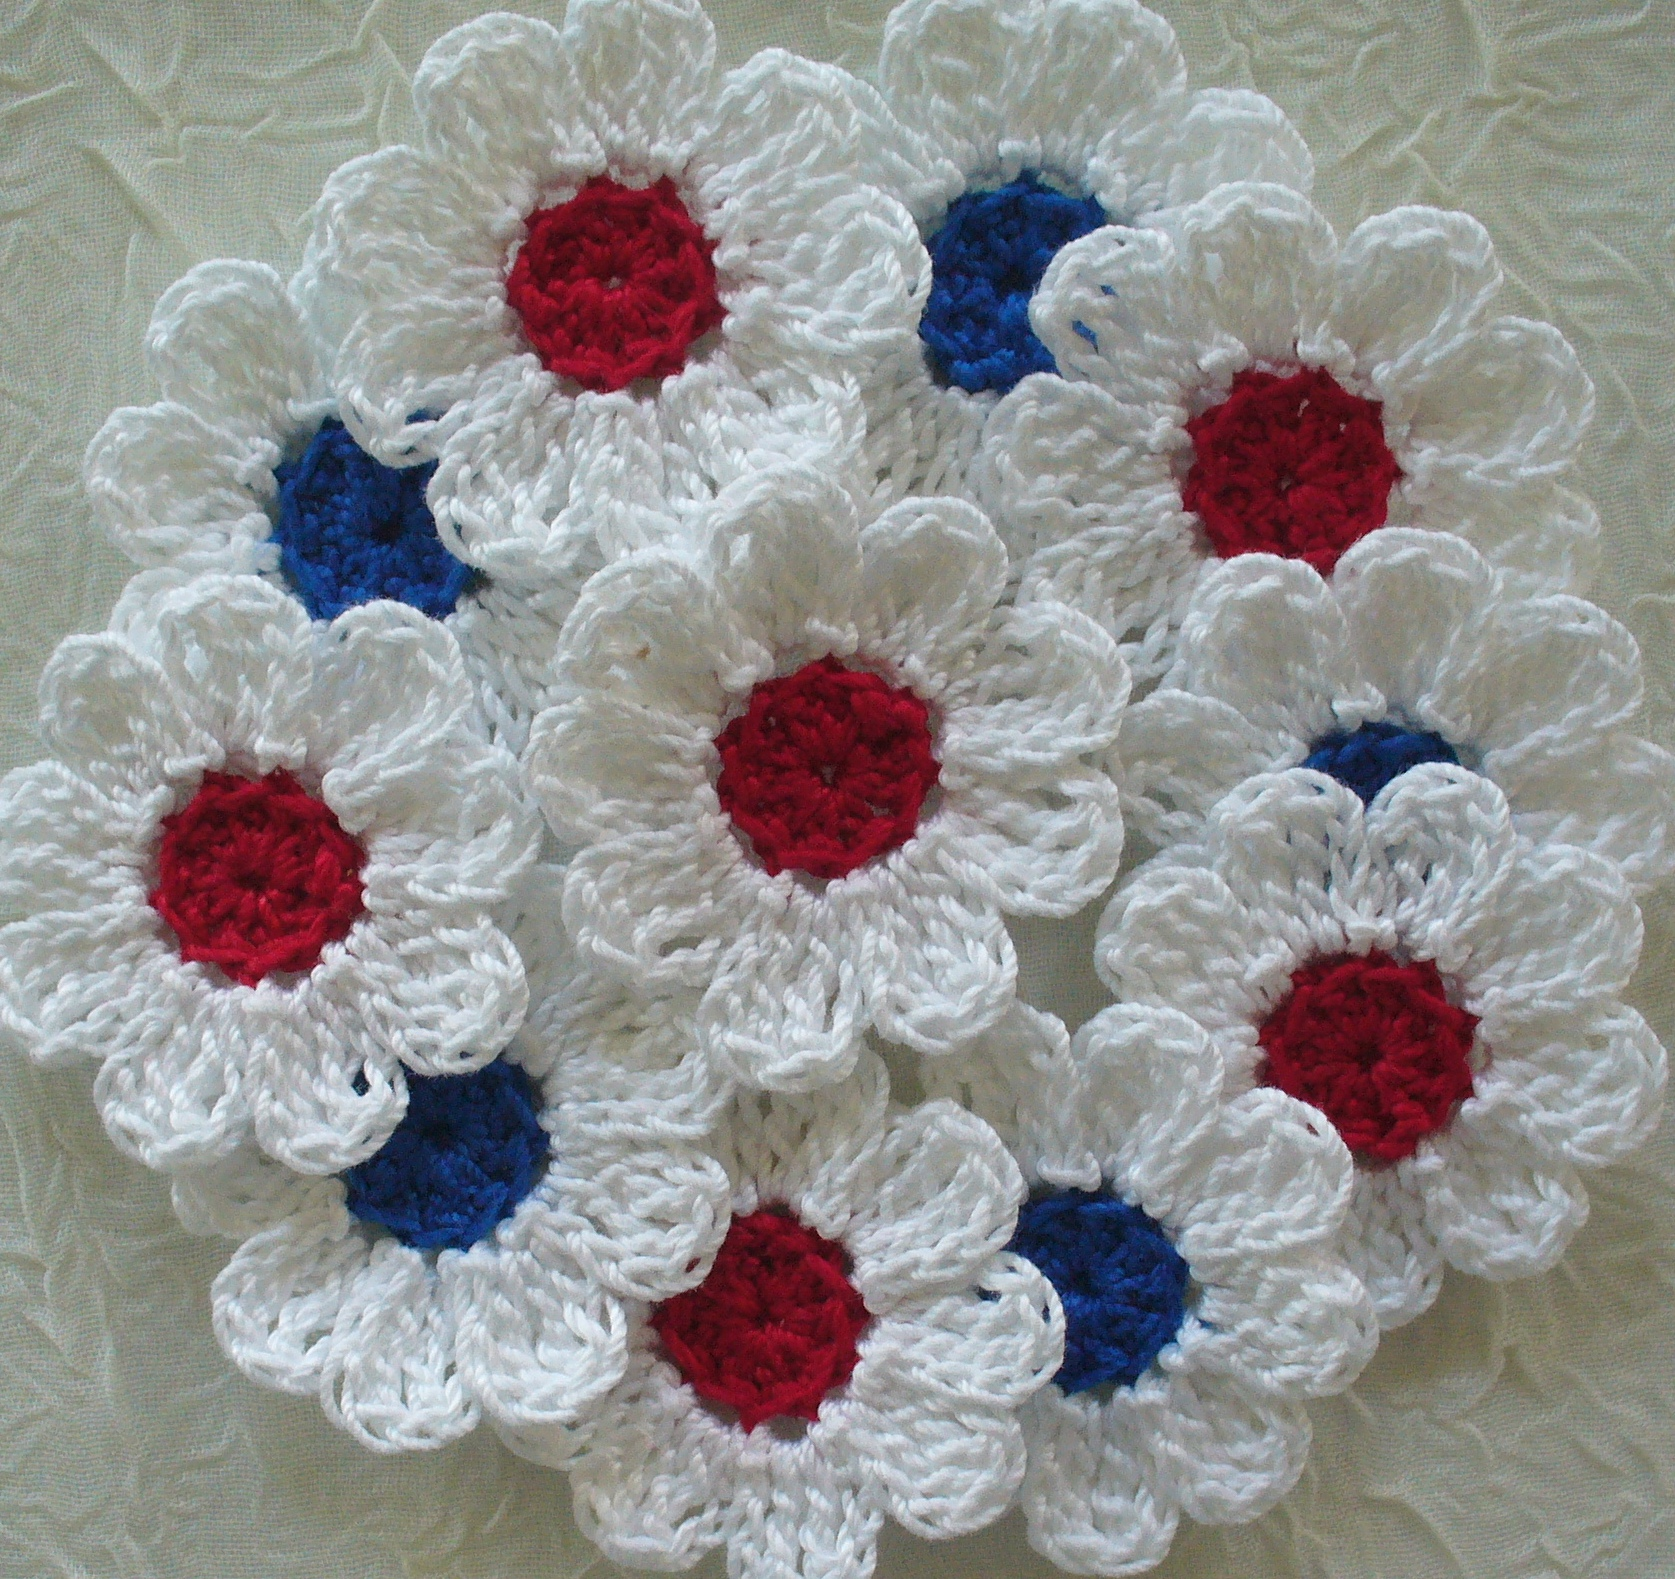 Crochet Small Daisy Flower Pattern : Red, White And Blue Crochet Daisy Flowers - Set Of 16 ...